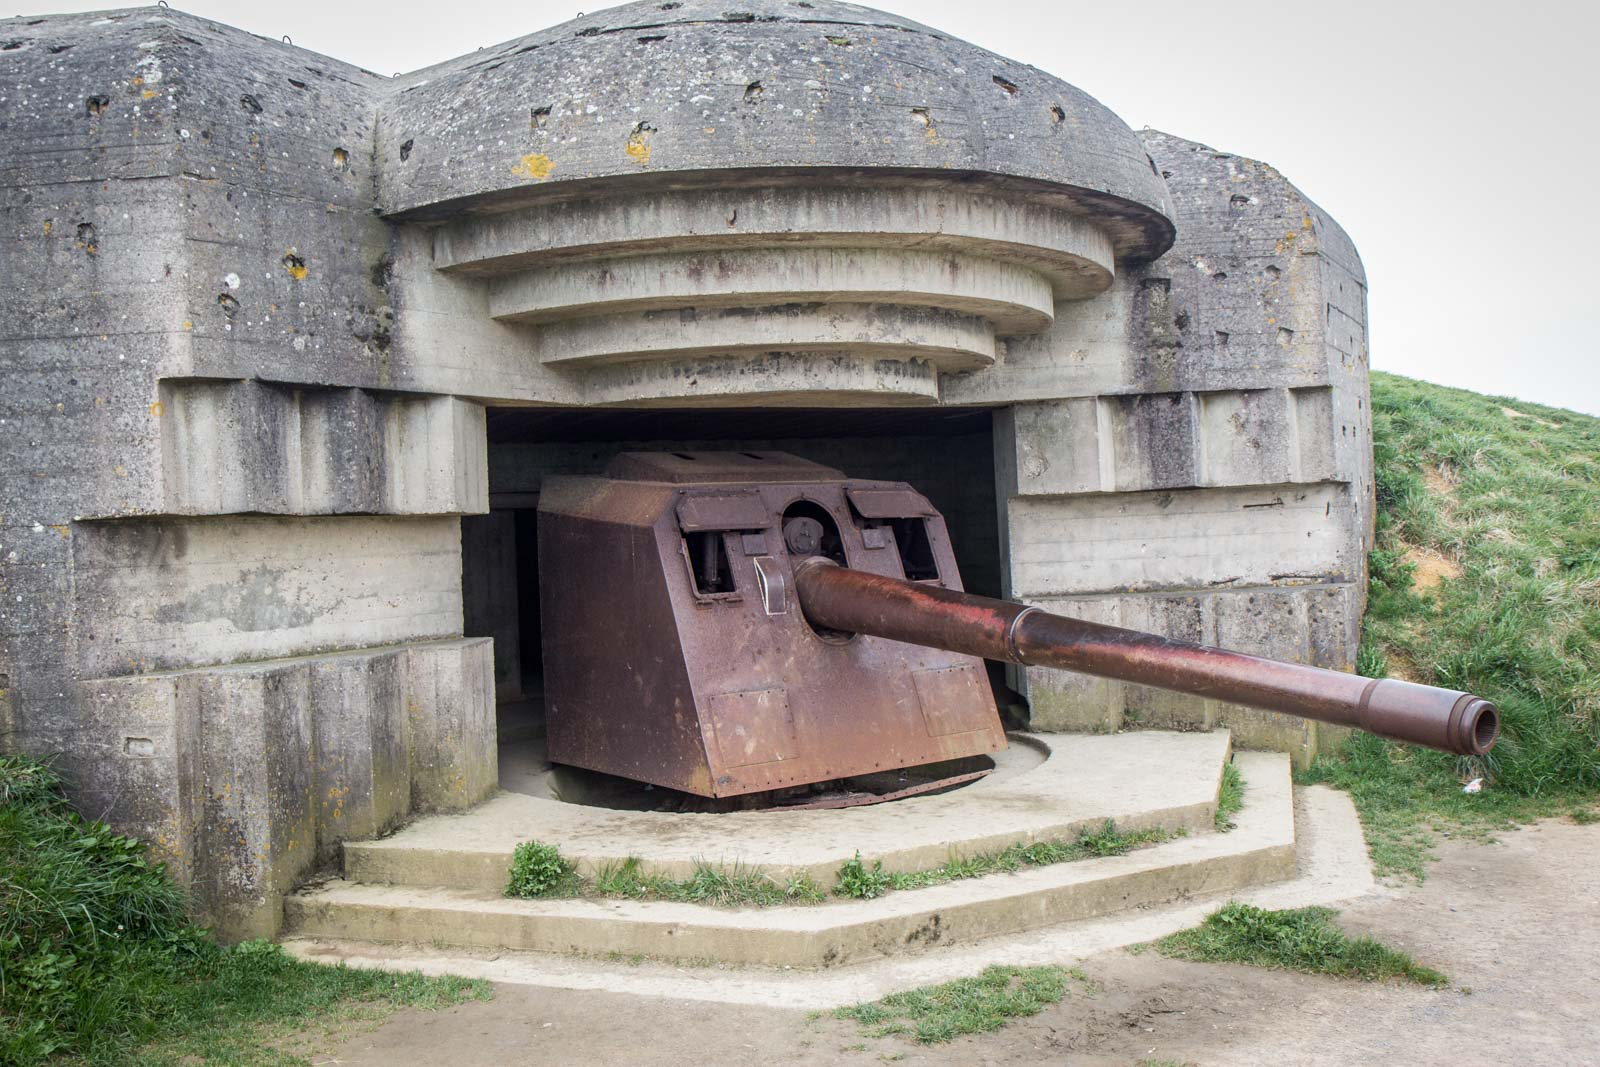 Longues-sur-Mer battery, Normandy, France